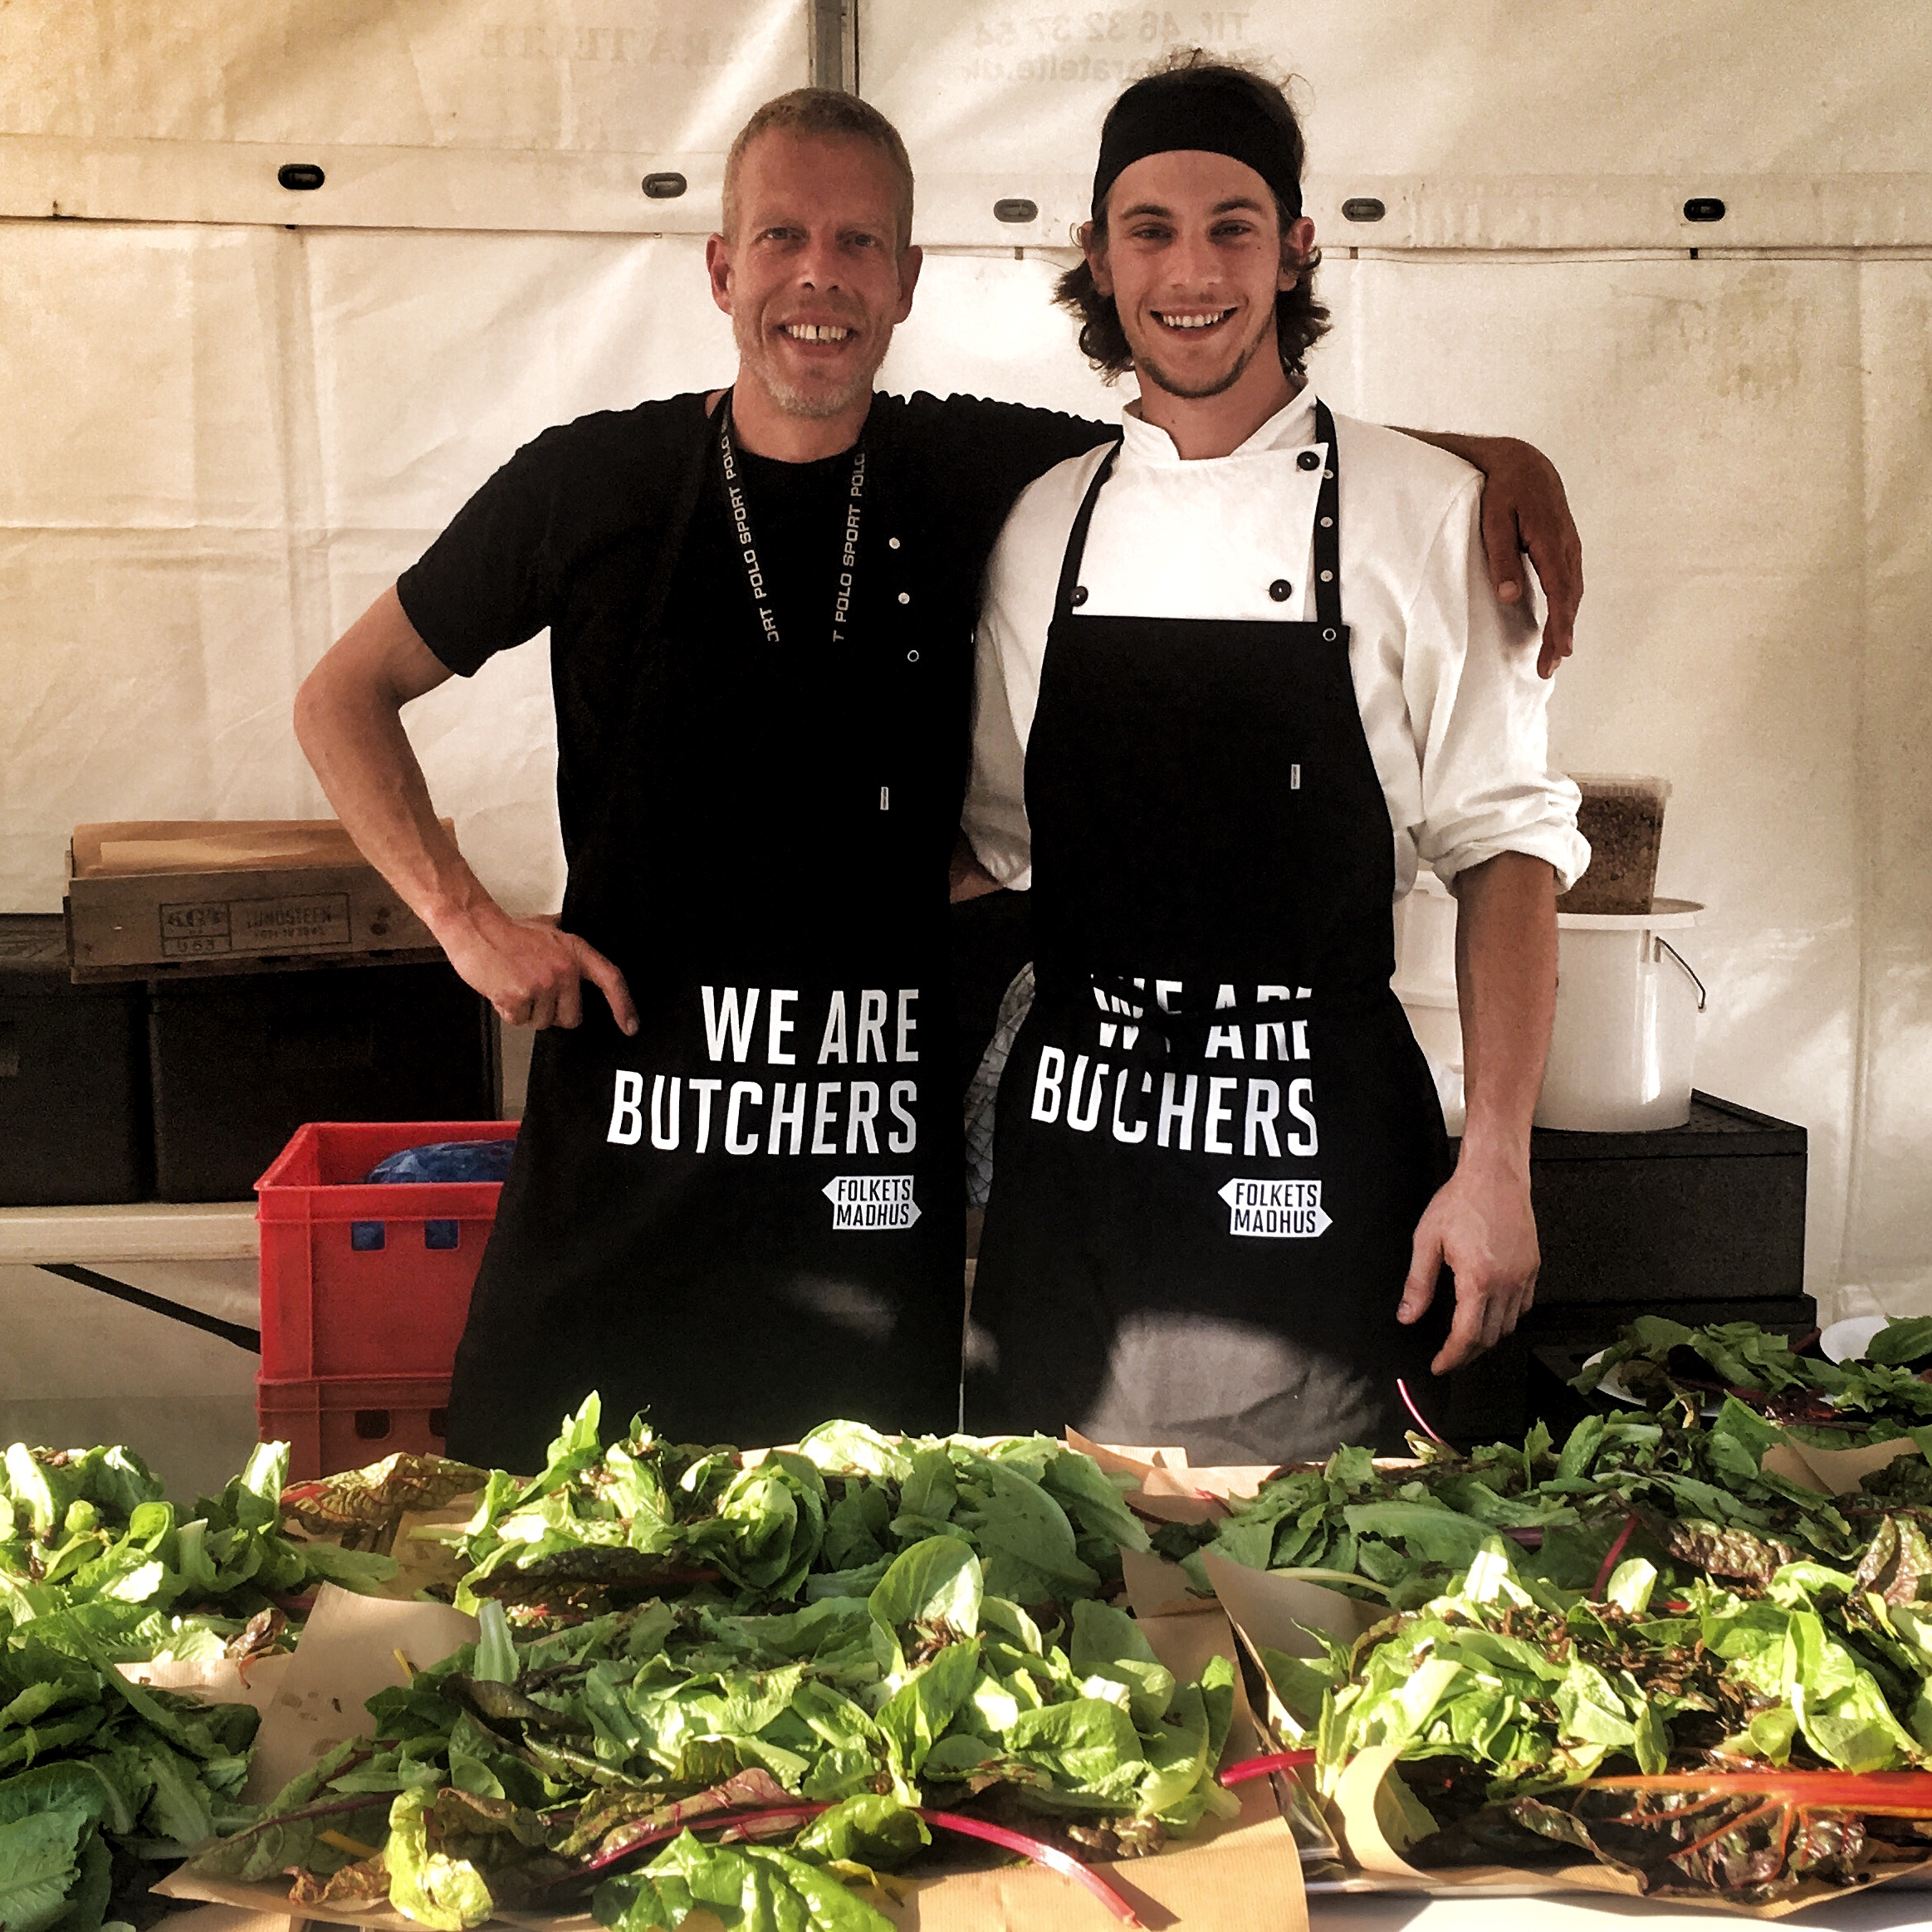 """Michael Museth and I with our """"Smoked Honey Bug Salad."""" Those smoked wheat worms and crickets turned out to be pretty good. I will forever be indebted to Michael for the opportunity he gave me in Denmark."""